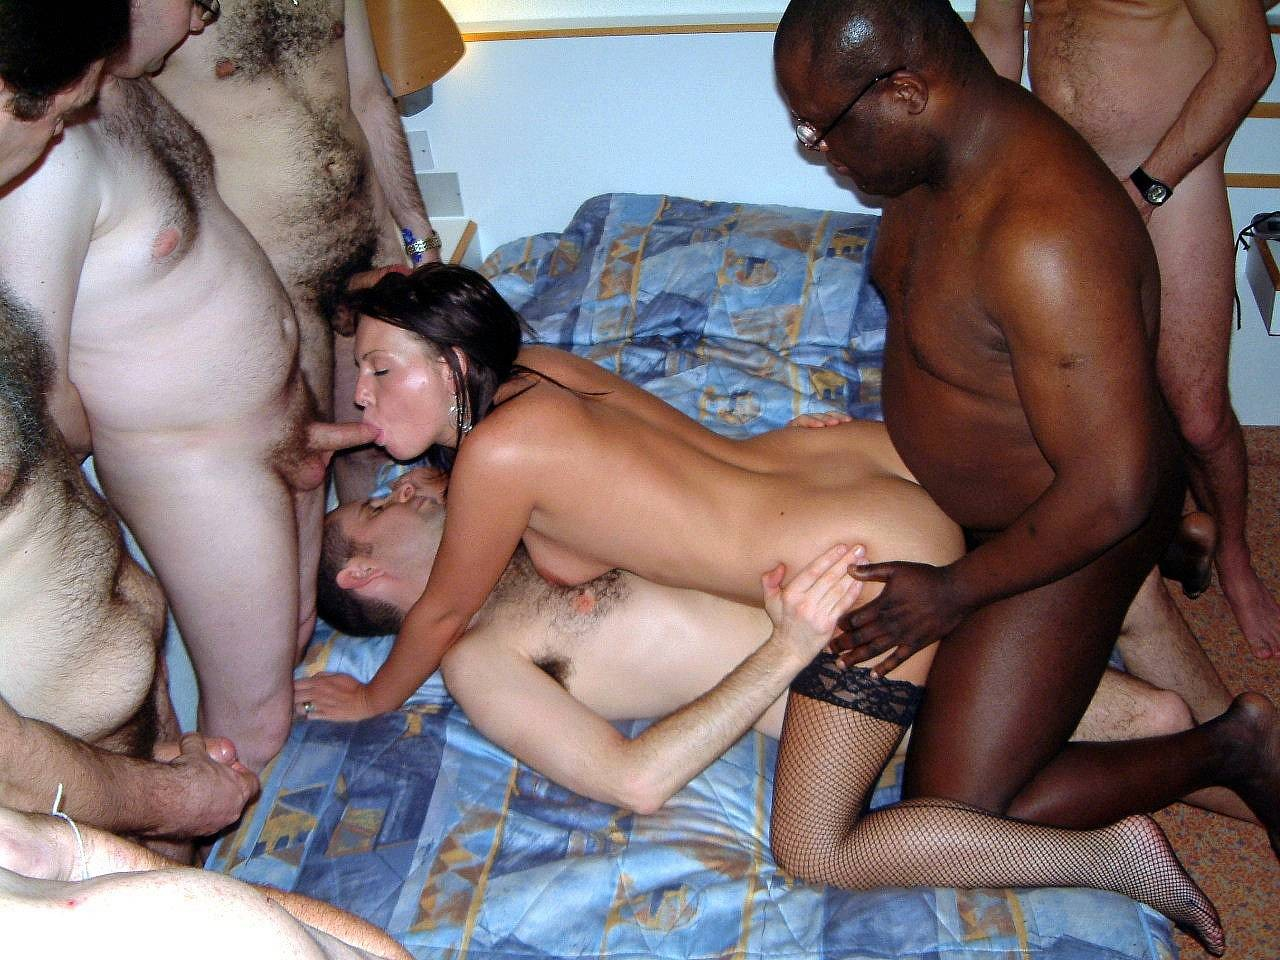 Free pictures amateur gangbang naked girls and